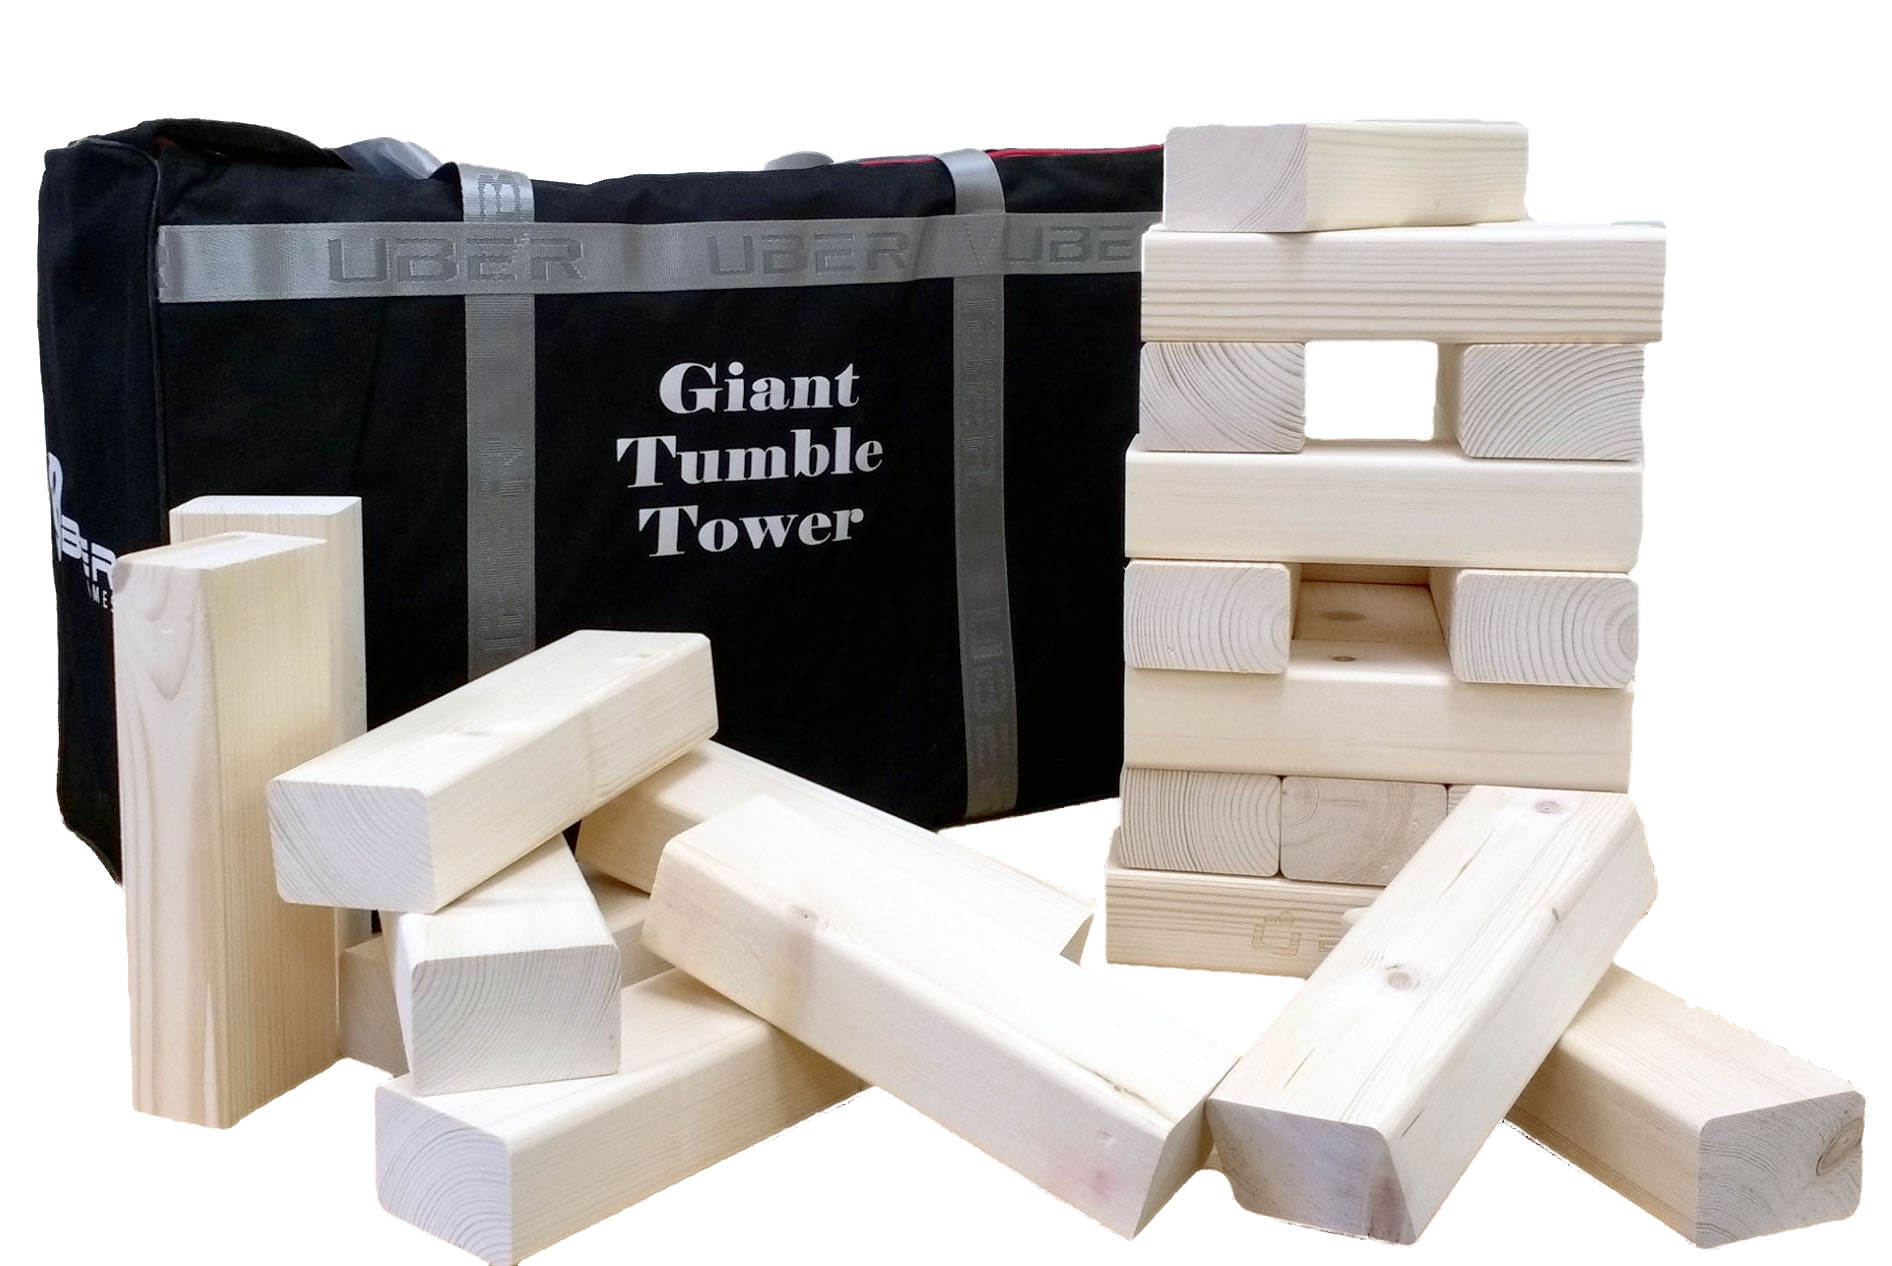 Tumble Tower with blocks and a bag